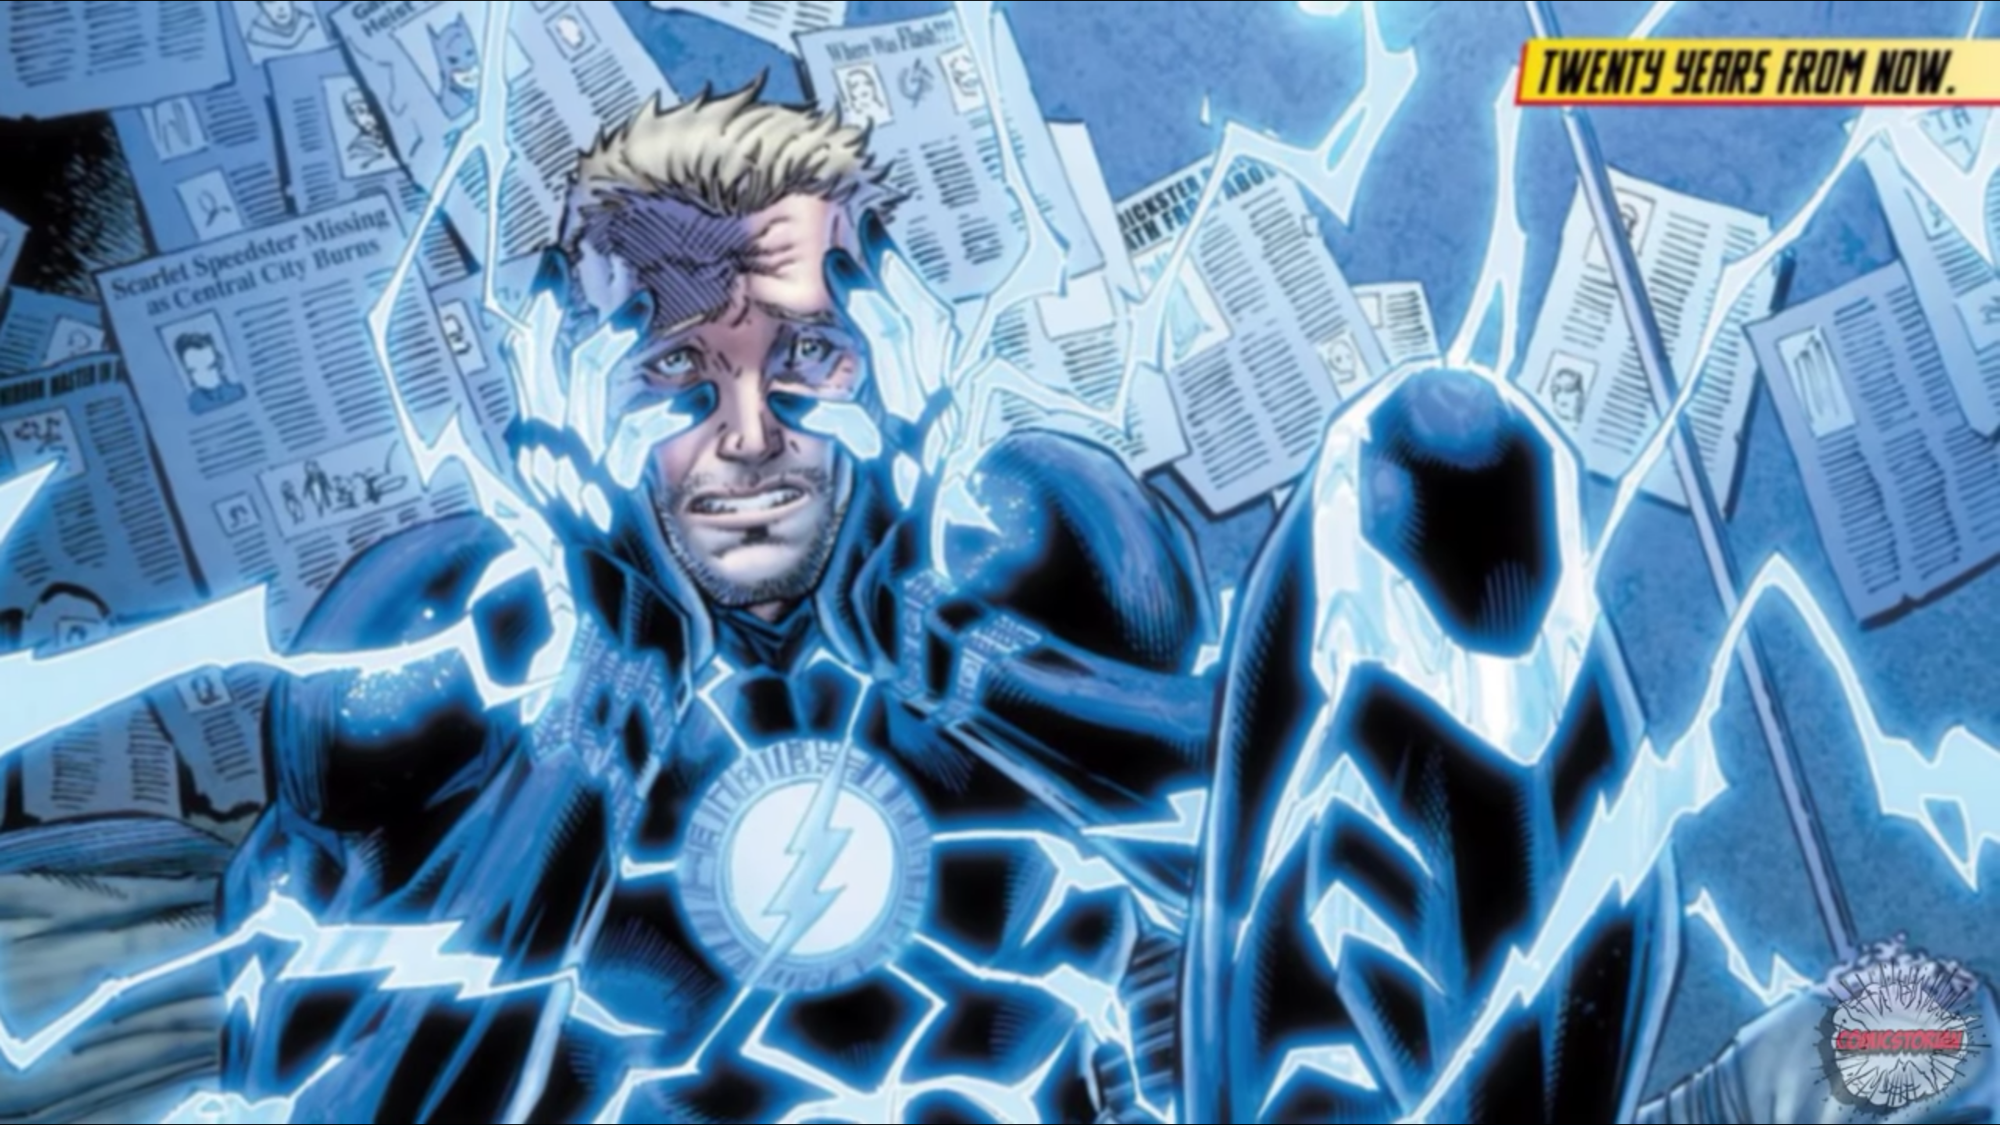 Why was the speedforce broken in the timeline of future flash?